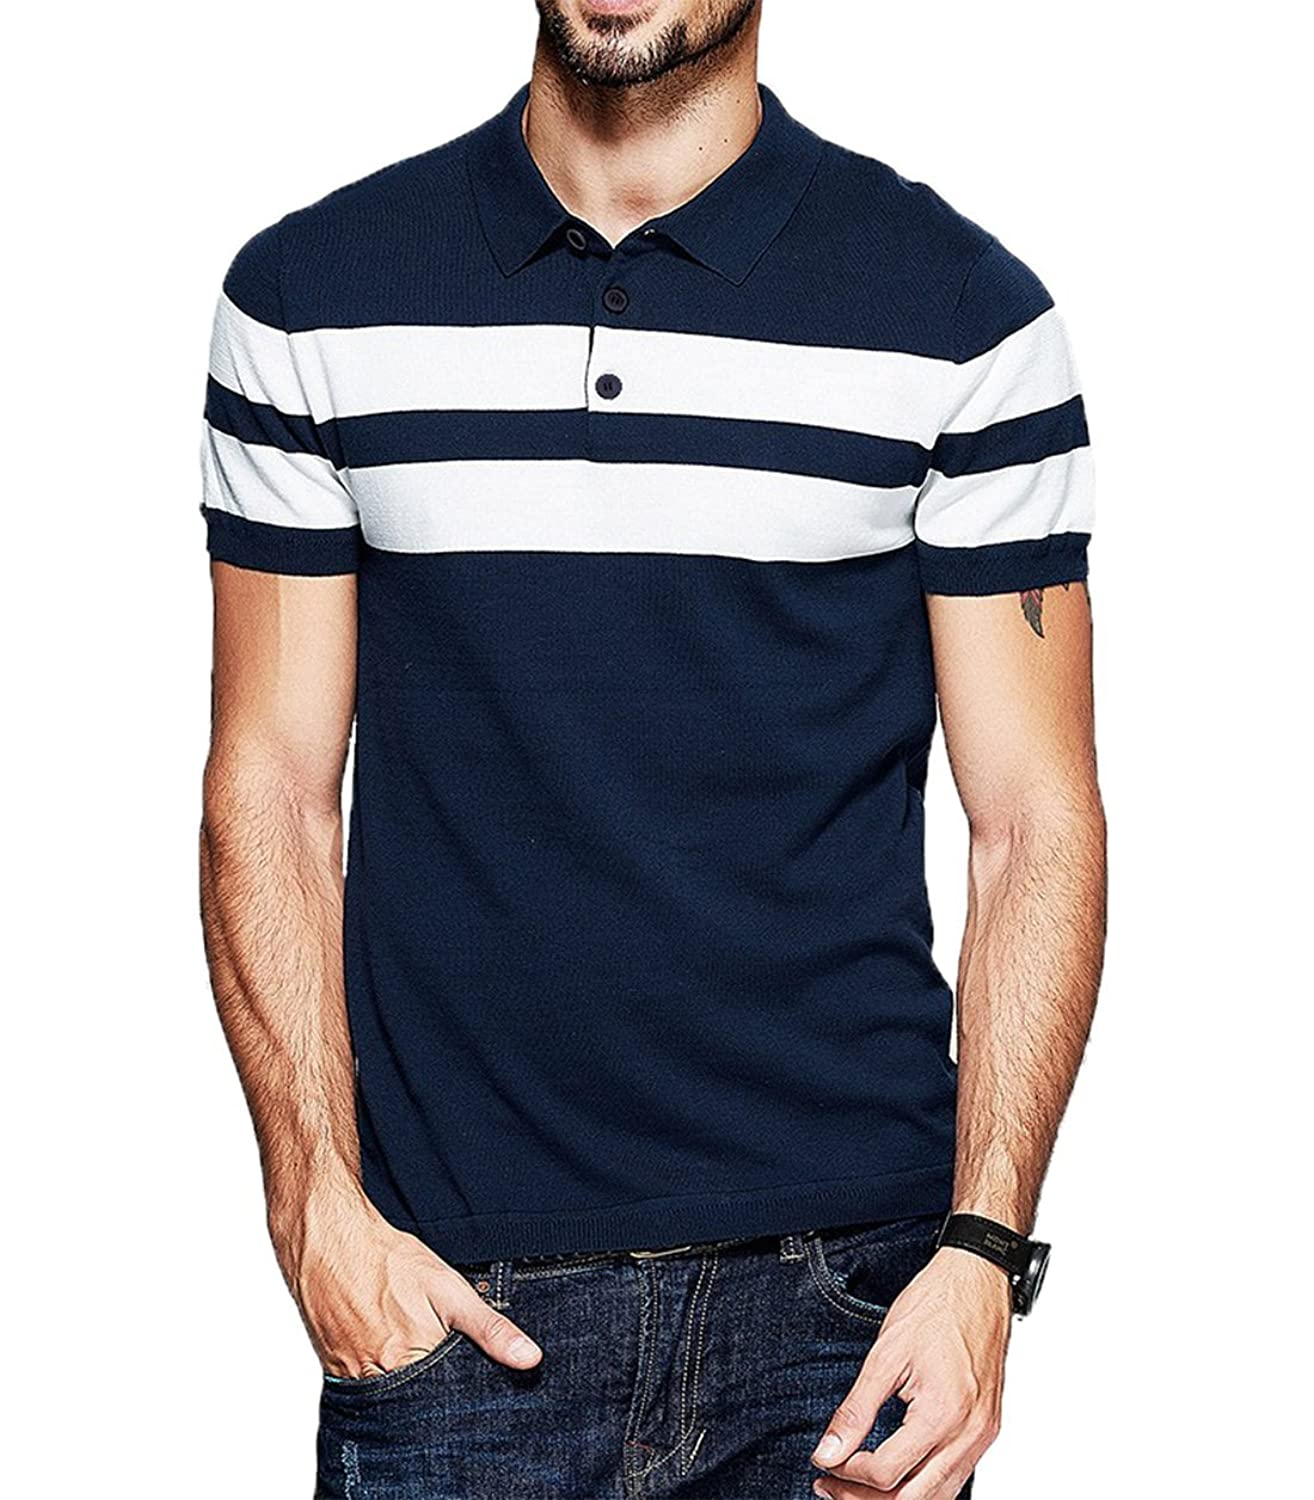 ff344e6c fanideaz Men's Cotton Half Sleeve Navy Blue Striped Polo T Shirts for Men